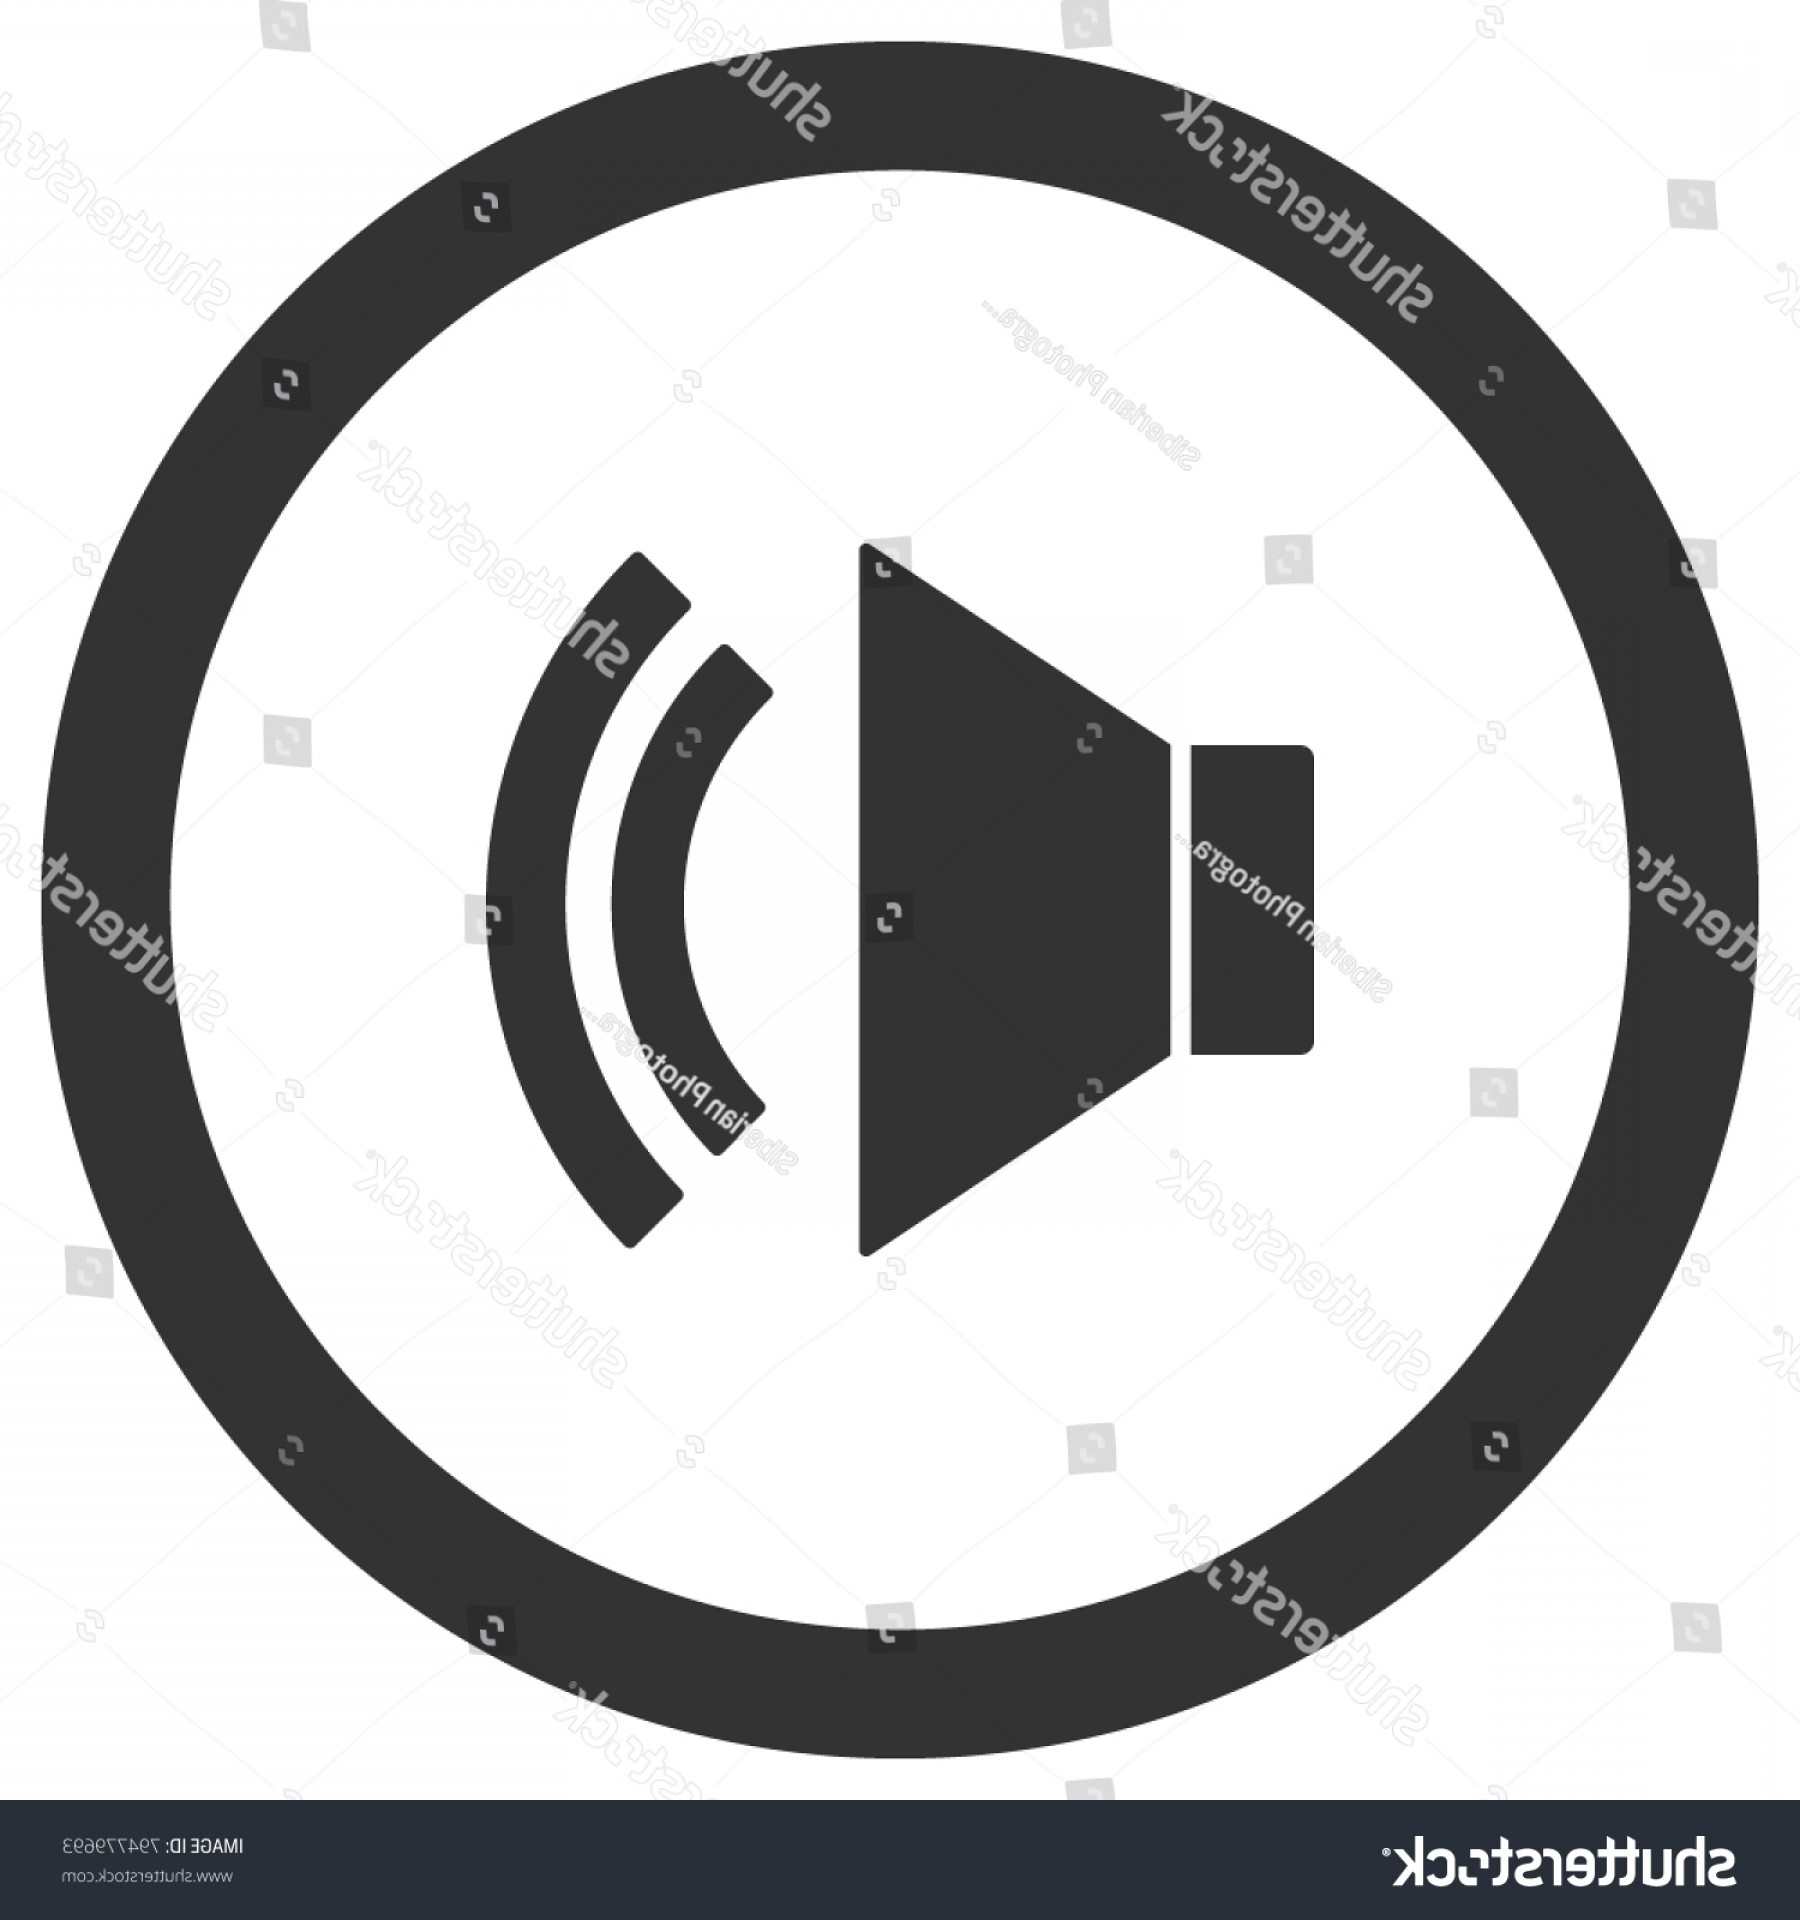 Volume Button Vector: Unmute Icon Circle Sound On Volume